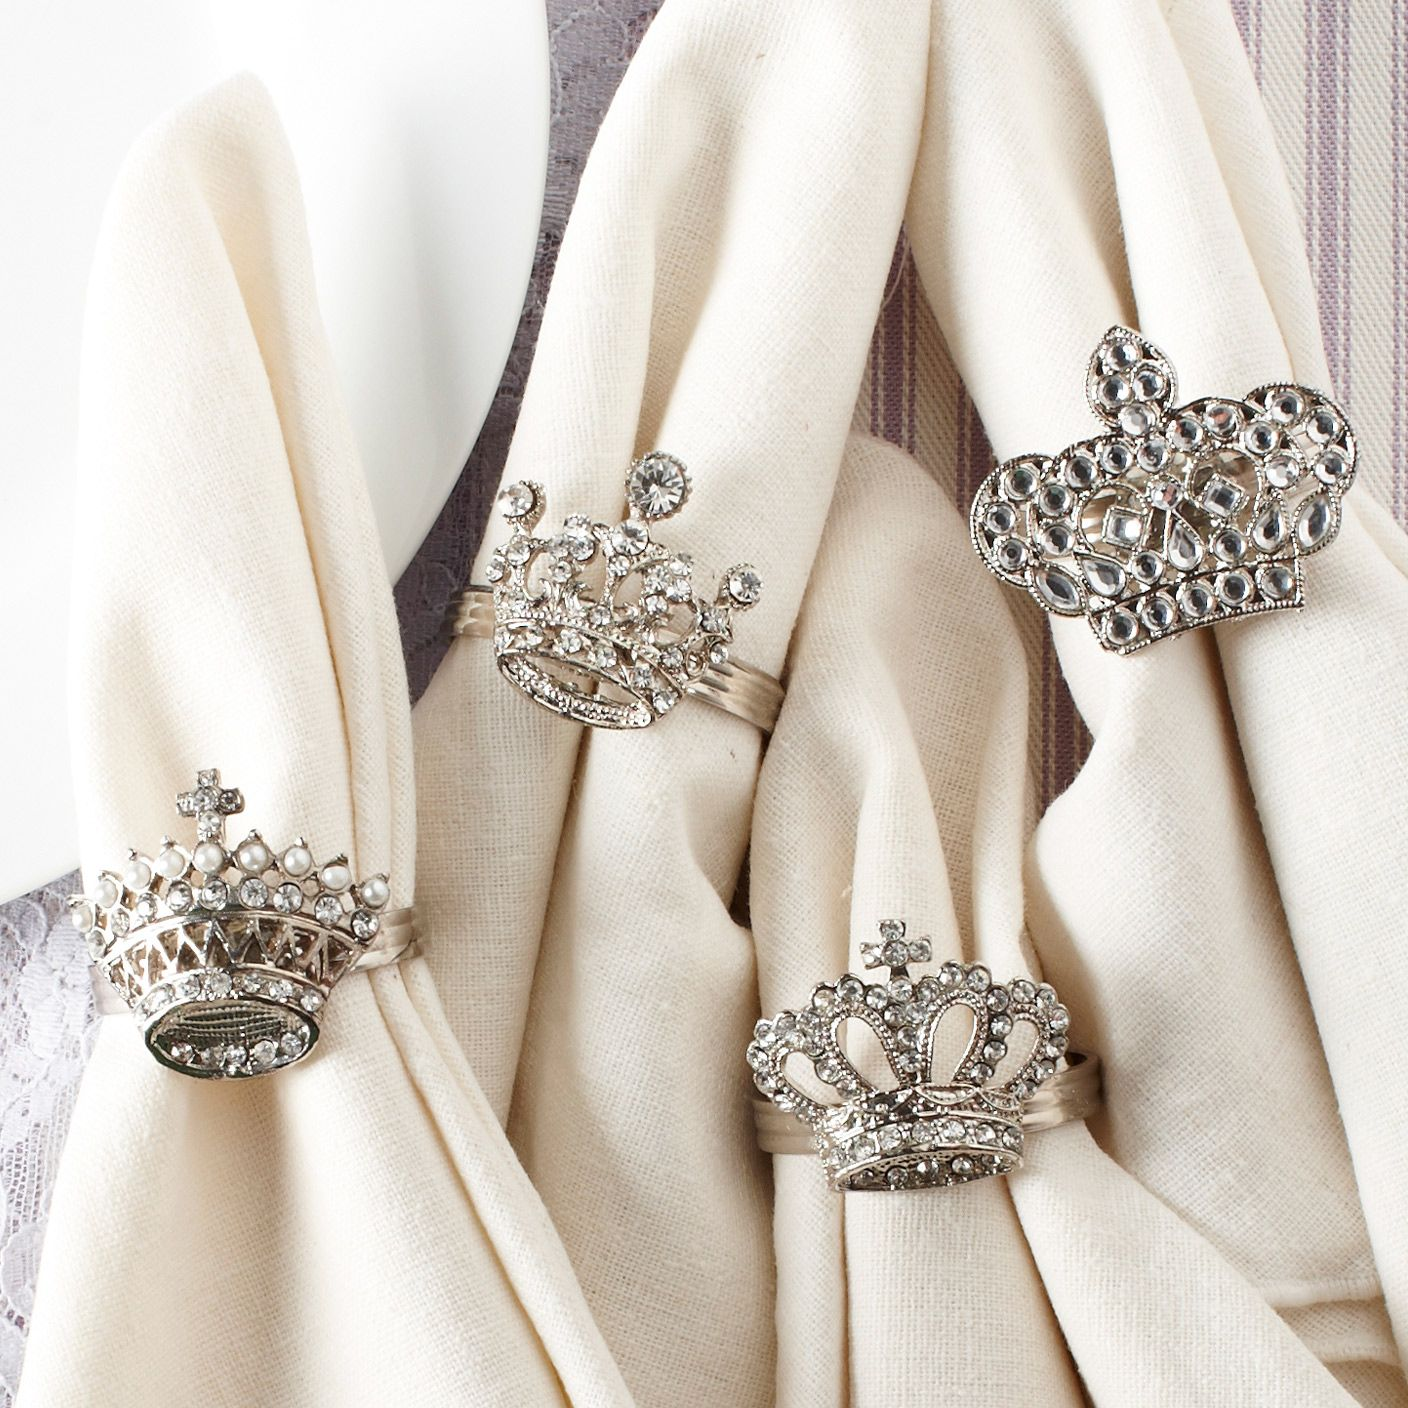 Layla Grayce Crown Jewels Napkin Ring Set of 4 Design Loves